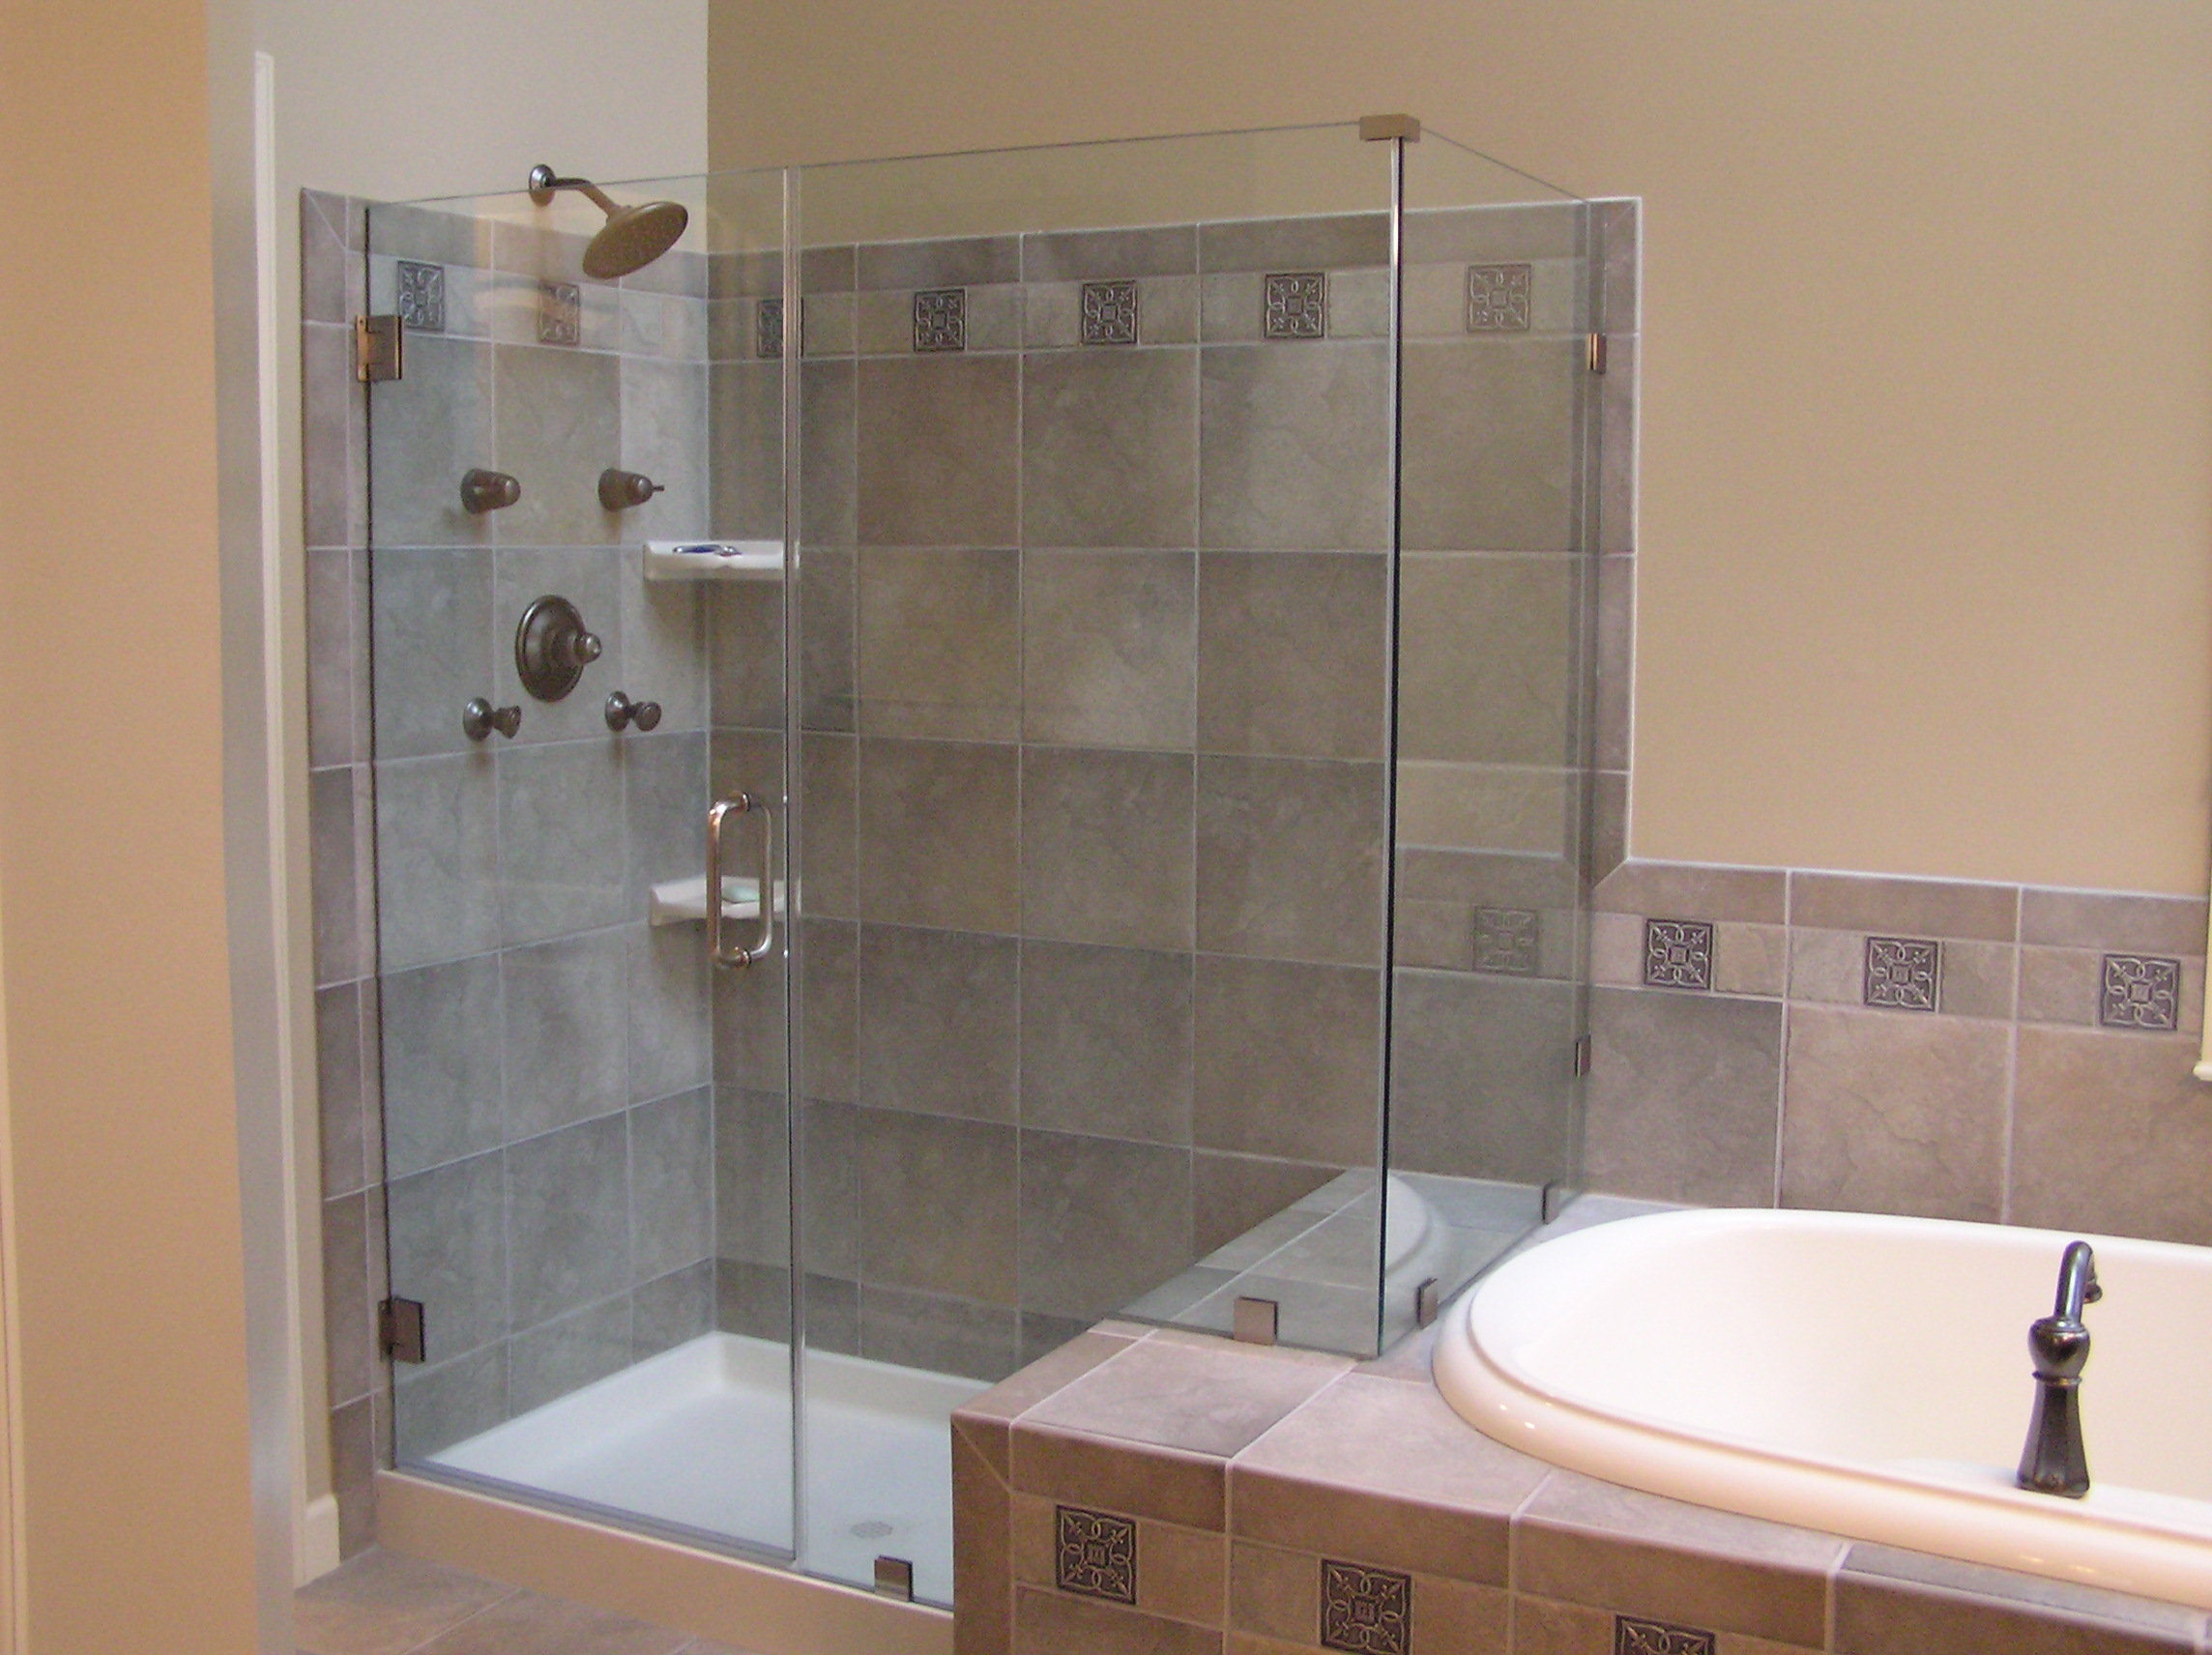 chicago west granite hall services bathroom steve ideas tile sebring emilys ellyn s quartz remodeling pictures glen remodel emily home wheaton portfolio cabinet